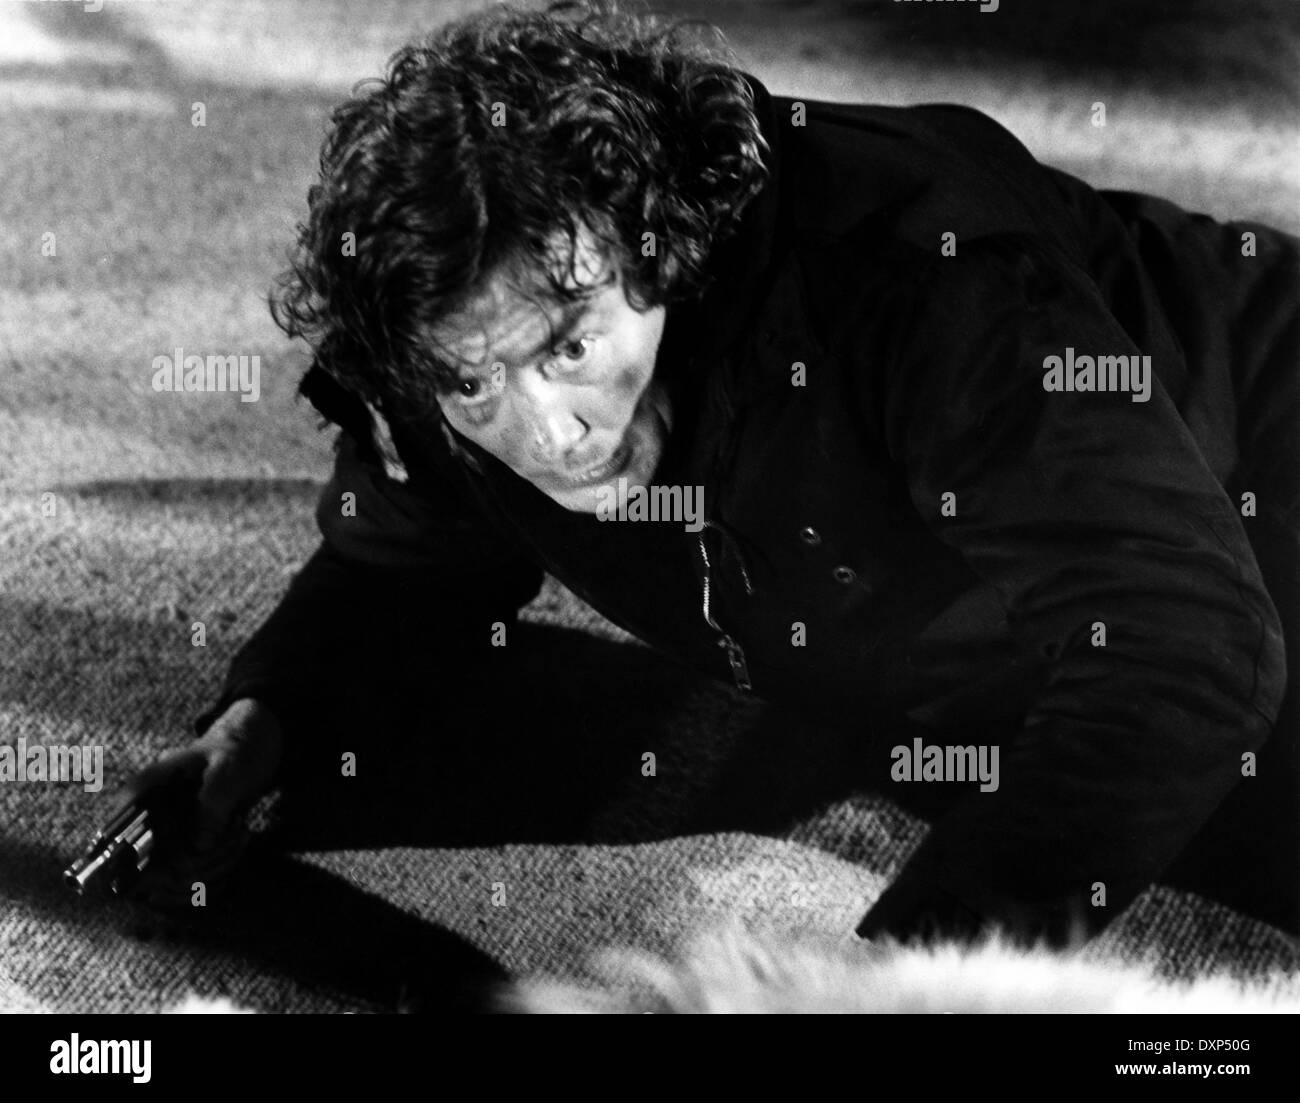 Albert wolf black and white stock photos images alamy